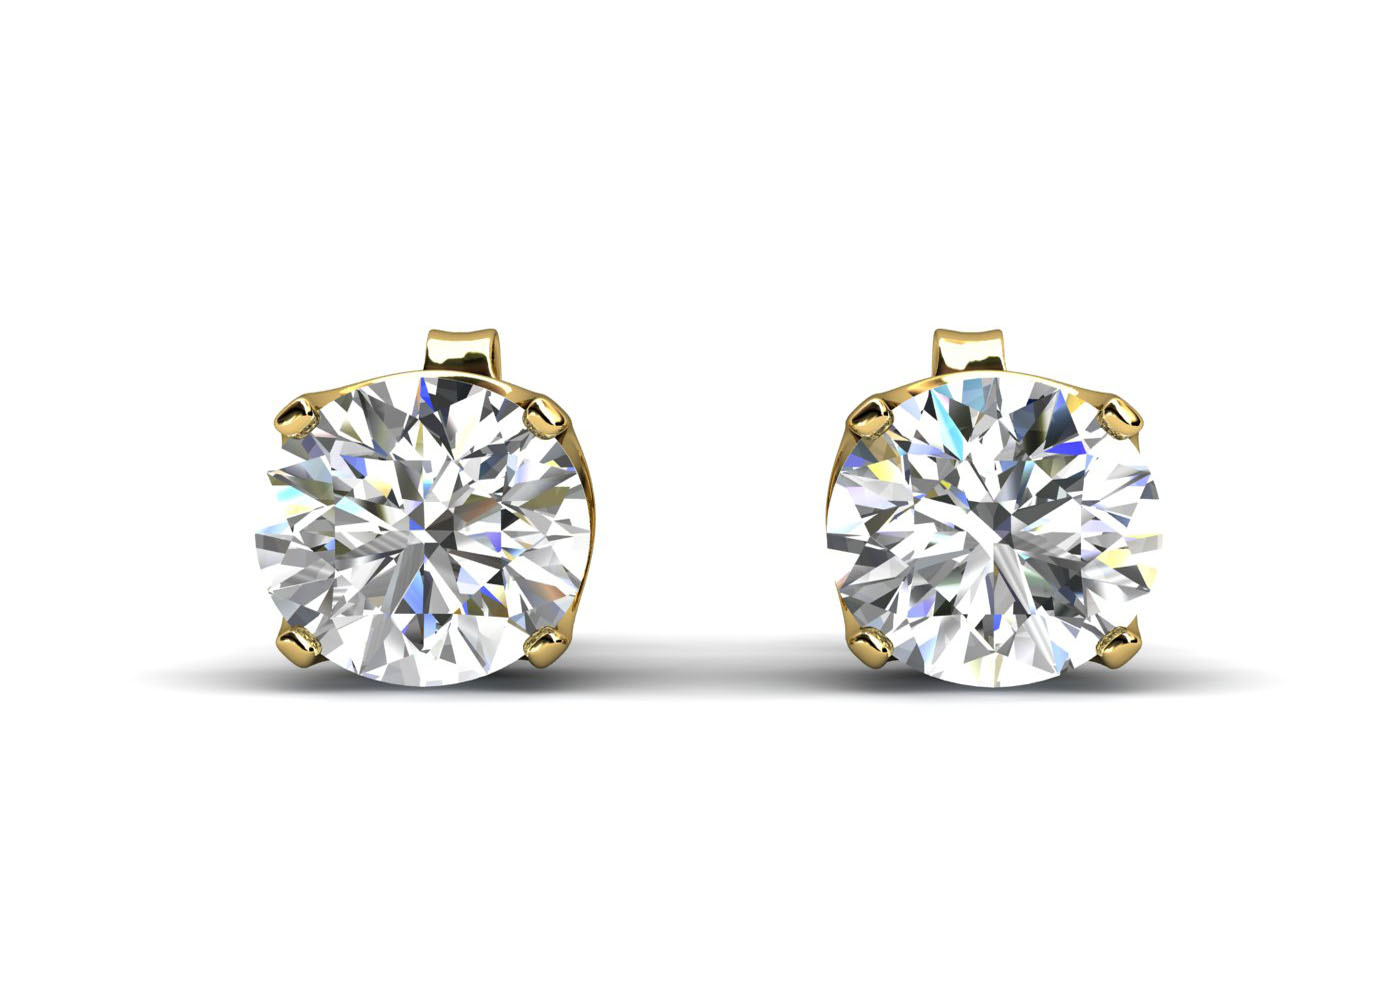 9ct Yellow Gold Claw Set Diamond Earrings 0.33 Carats